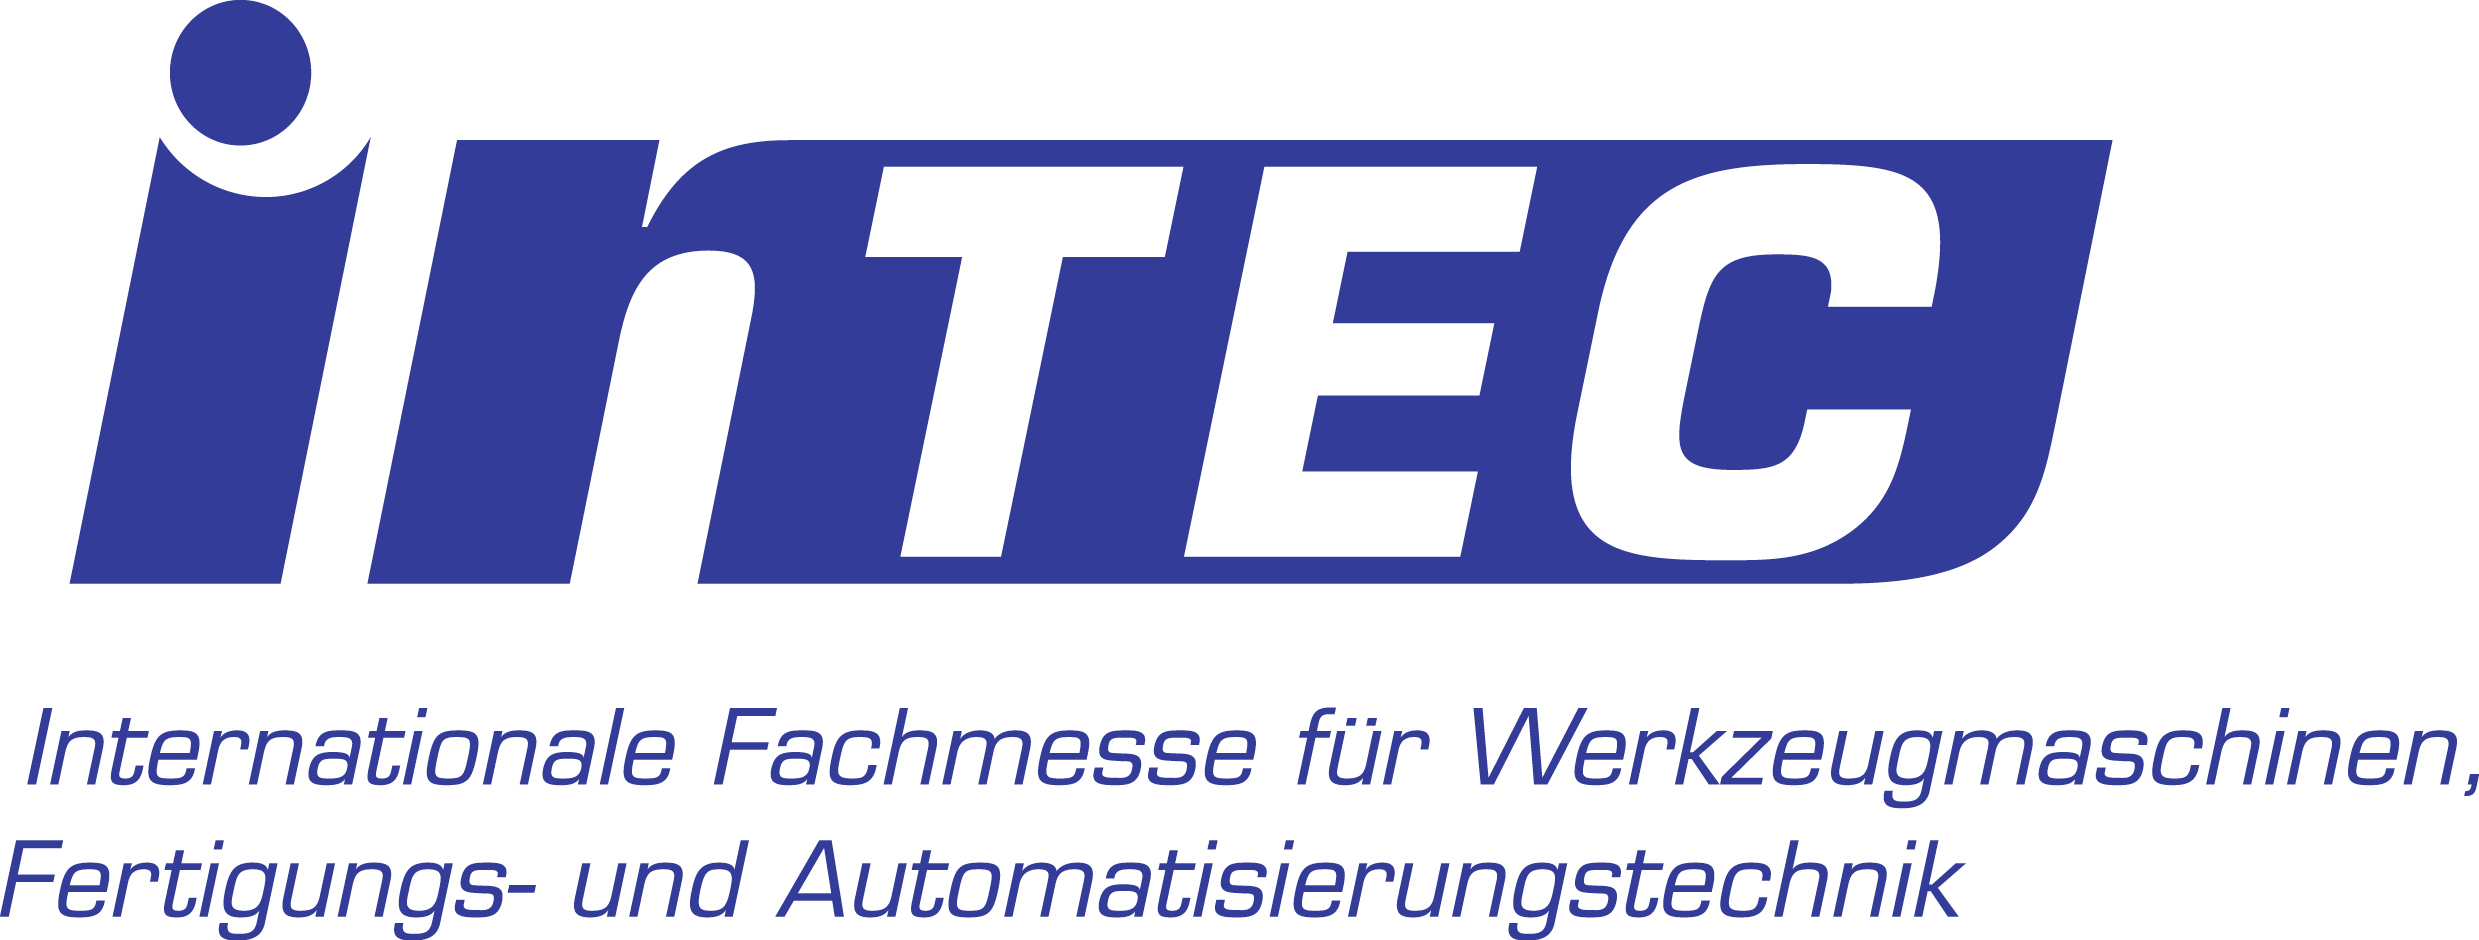 Latest SORALUCE developments exhibited at INTEC 2015, from 26th to 27th February in Leipzig